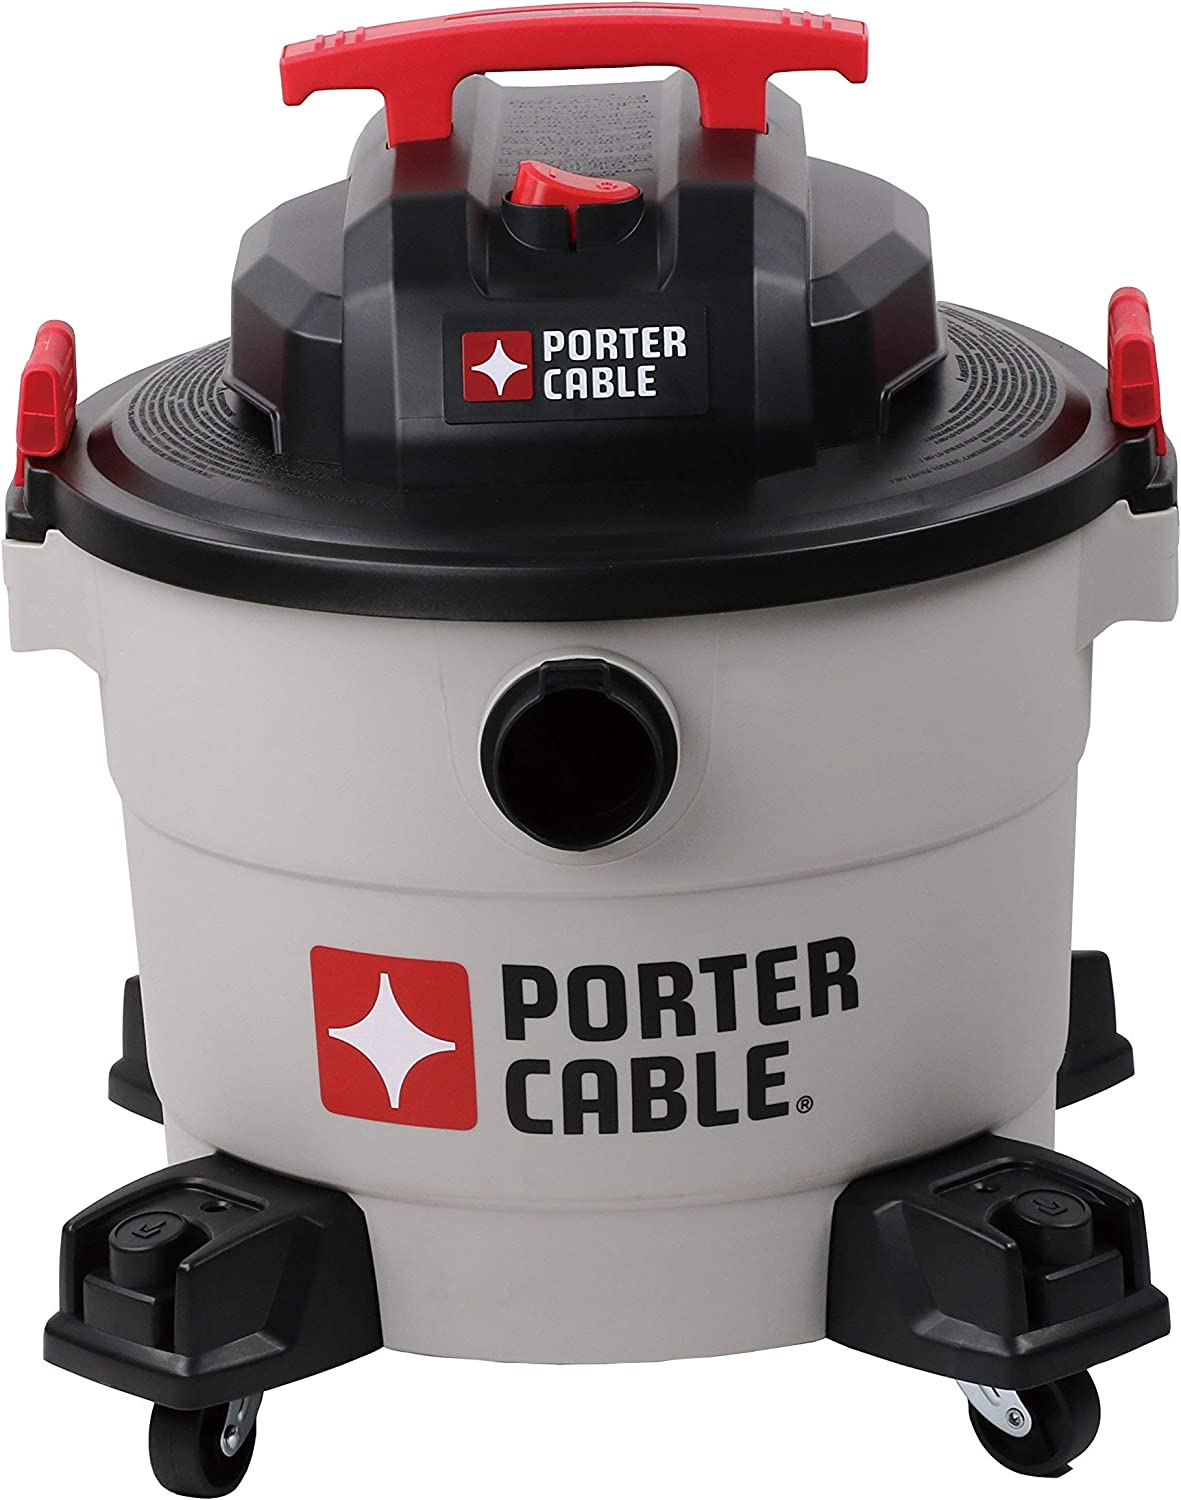 Porter-Cable Wet/Dry Vacuum, 9 Gallon, 5 Horsepower - Corded (Renewed)